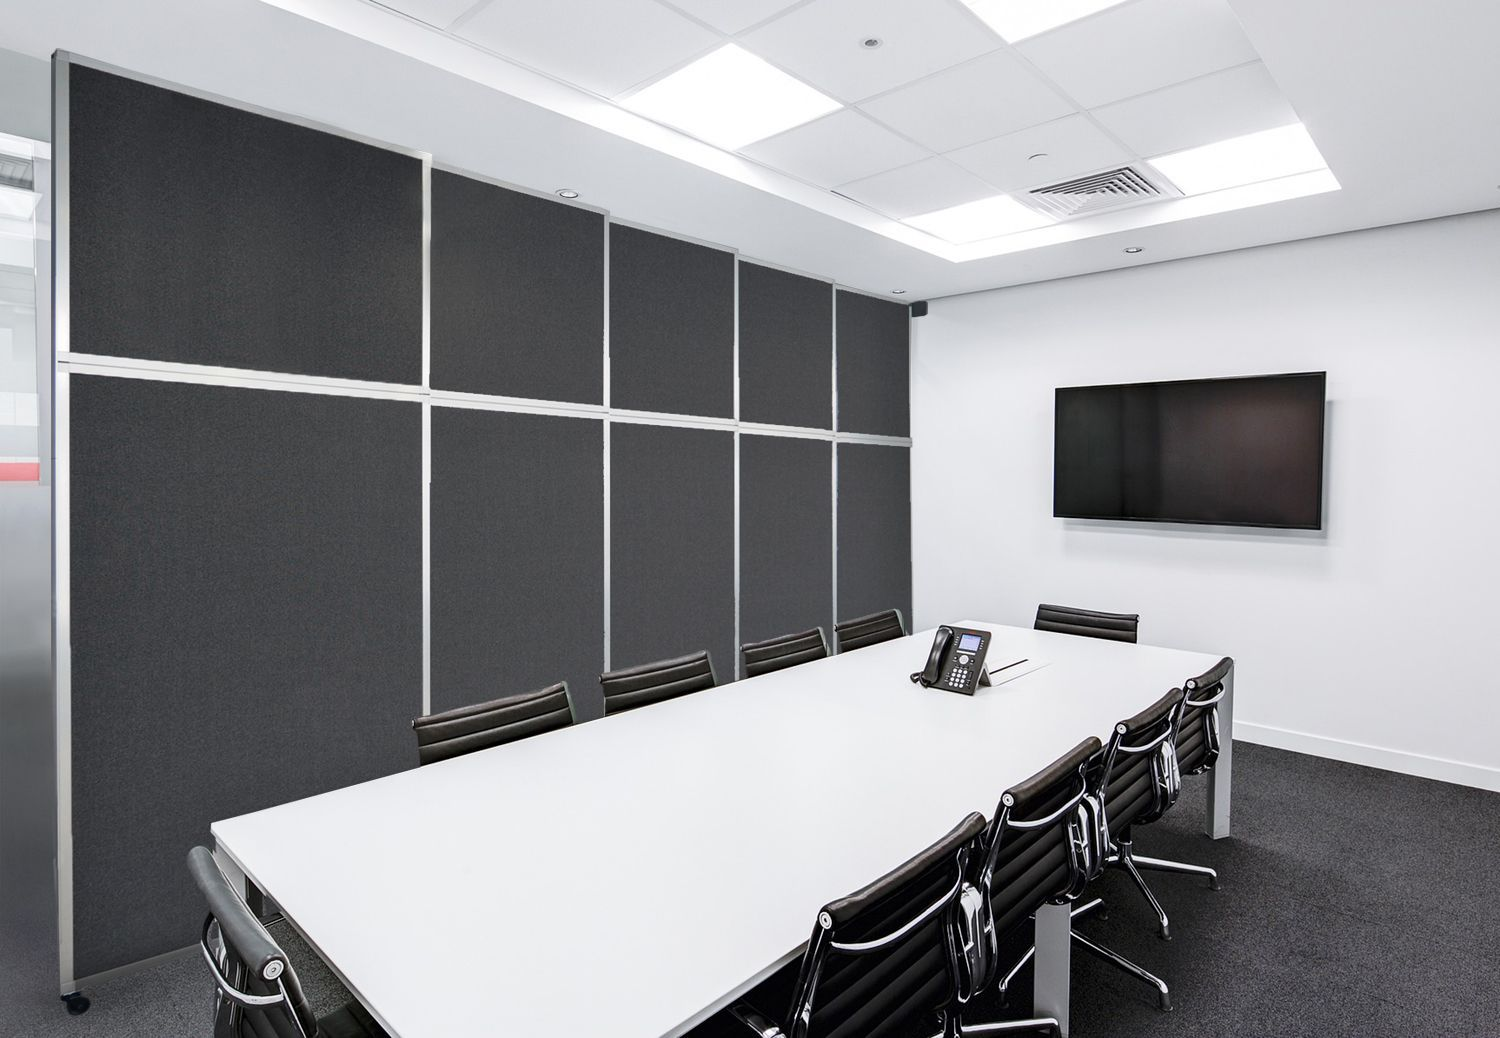 Our extra large room dividers can create modern office privacy